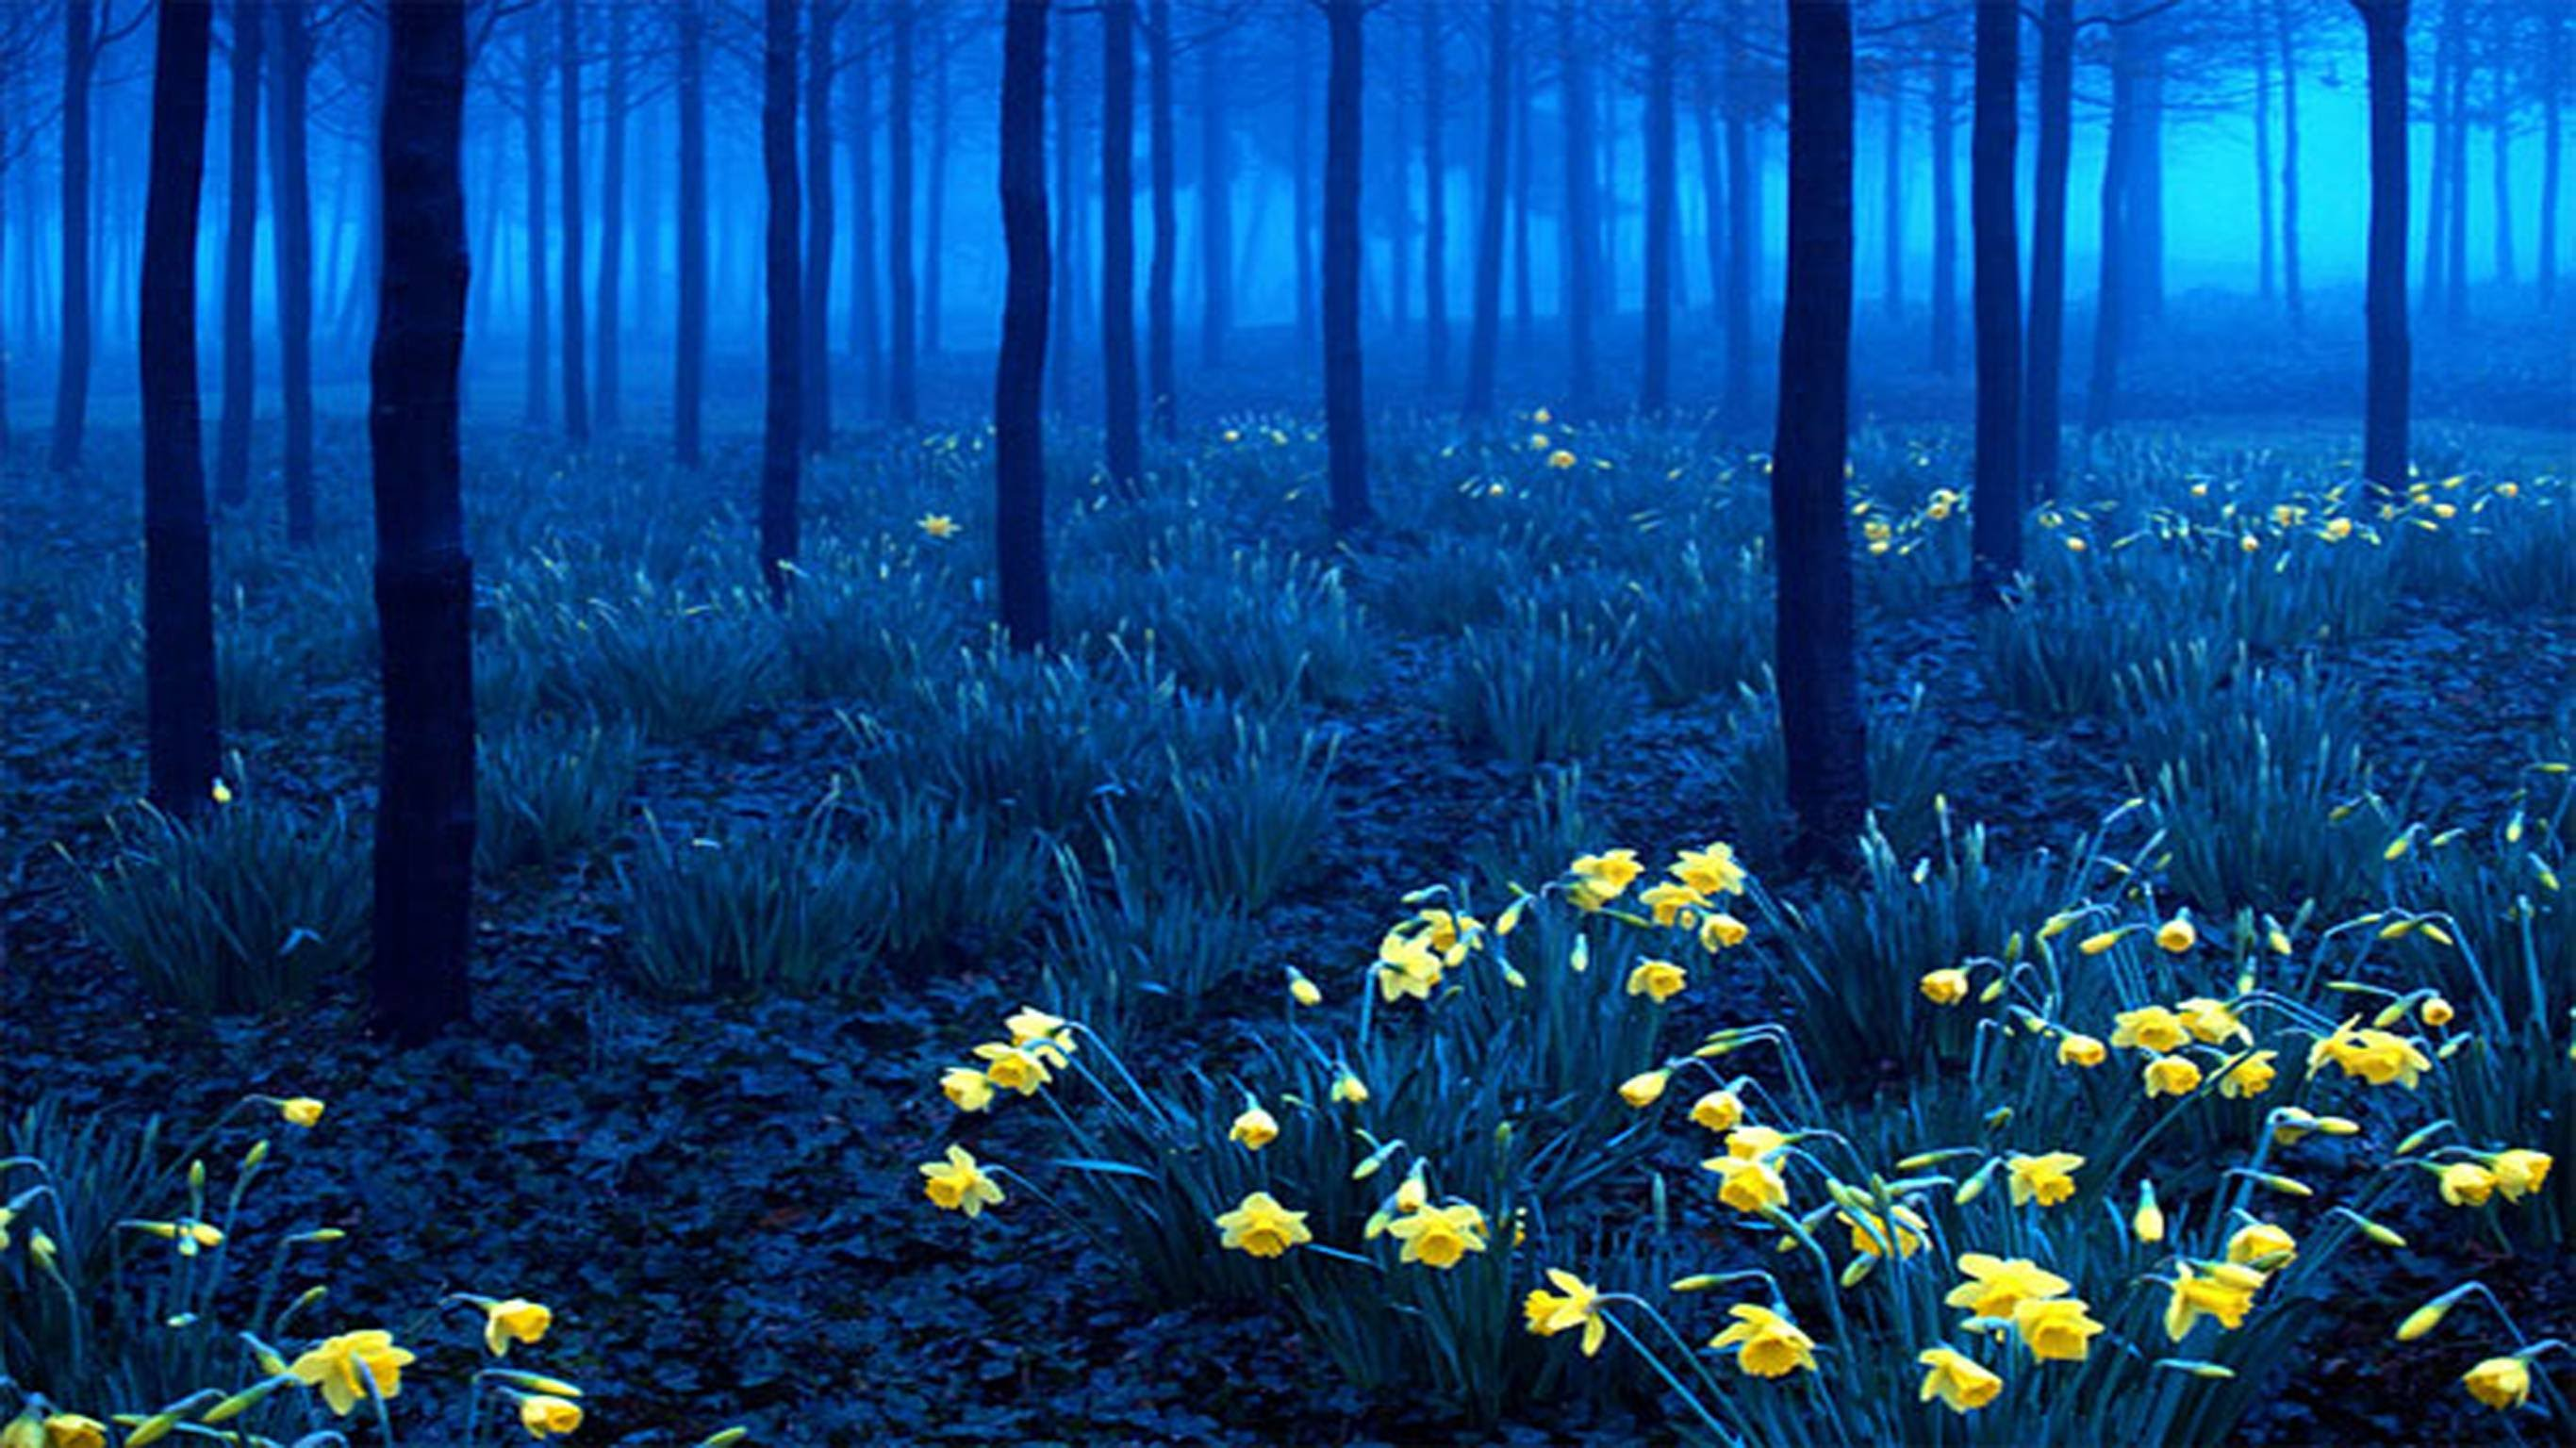 black-forest-secret-world